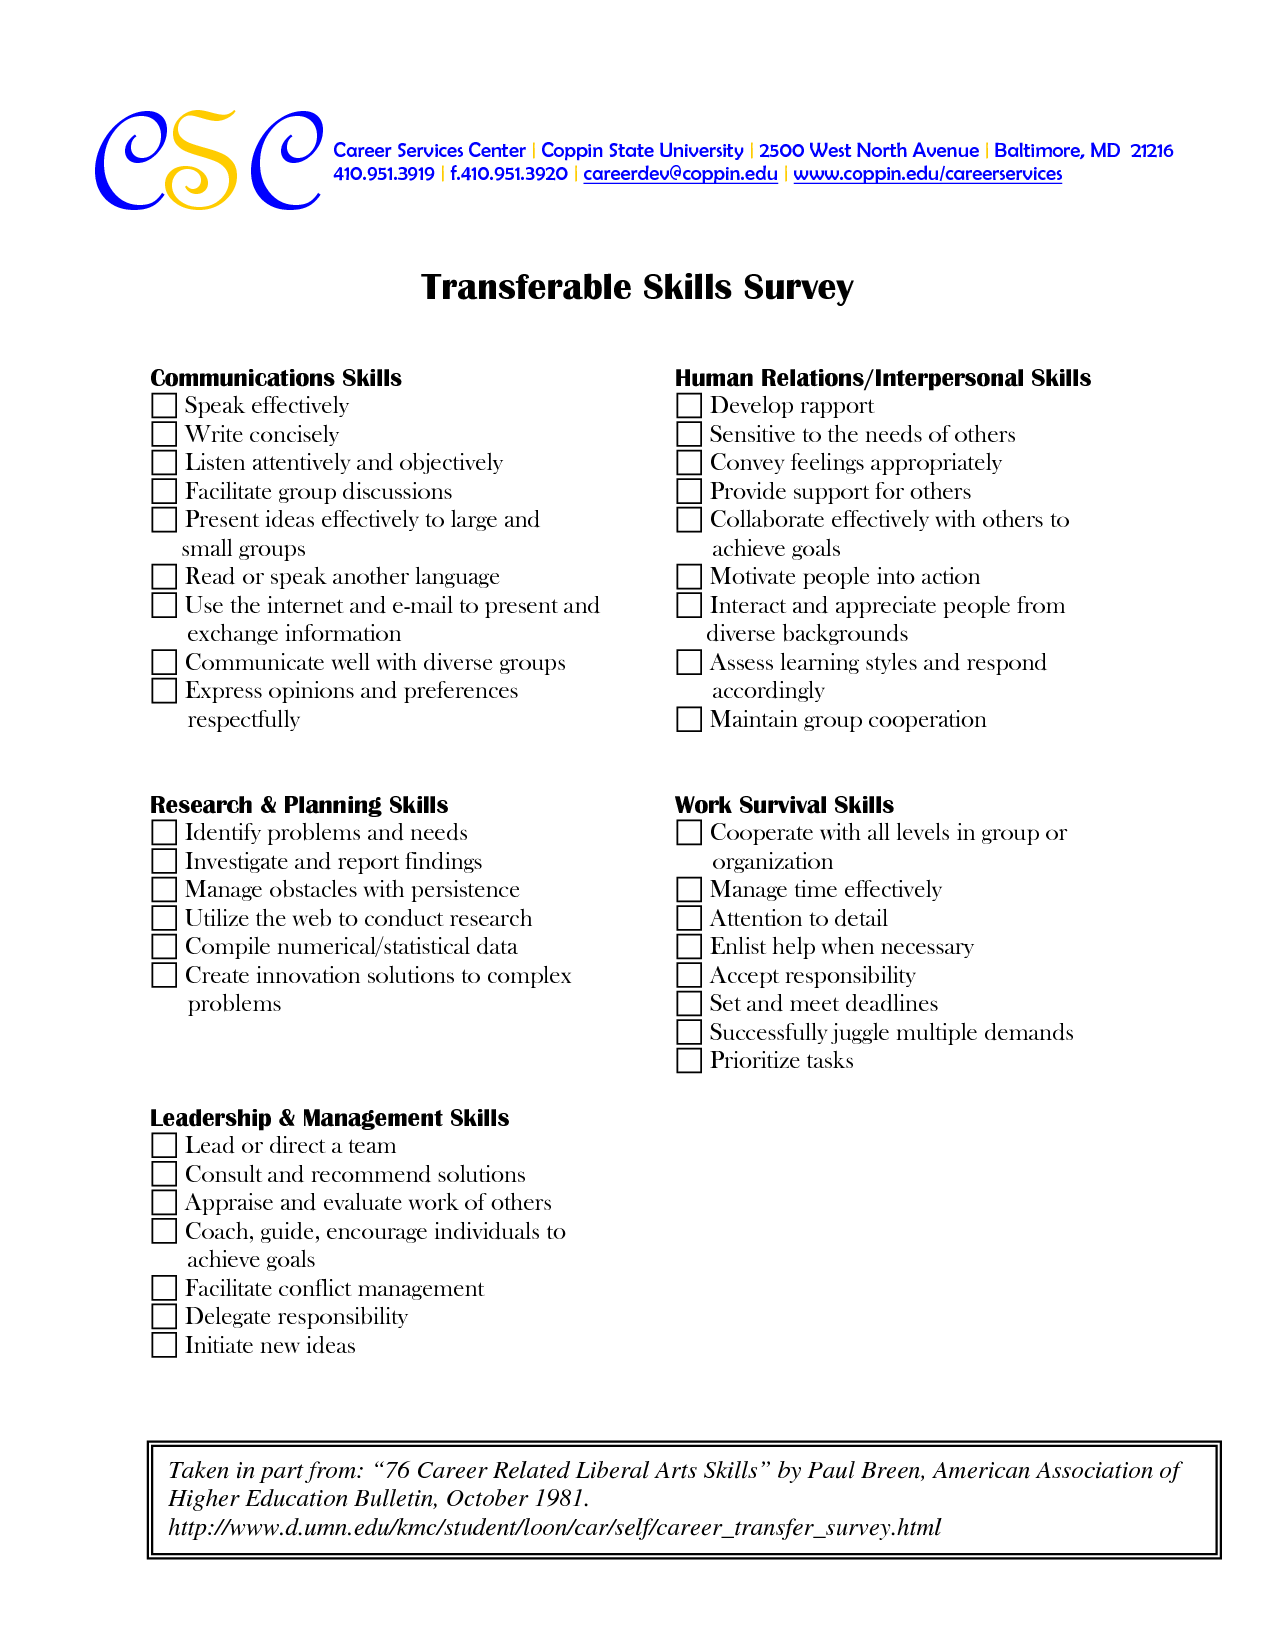 Worksheets Skills Inventory Worksheet worksheet job skills worksheets mytourvn study site bunch ideas of daily living with free free